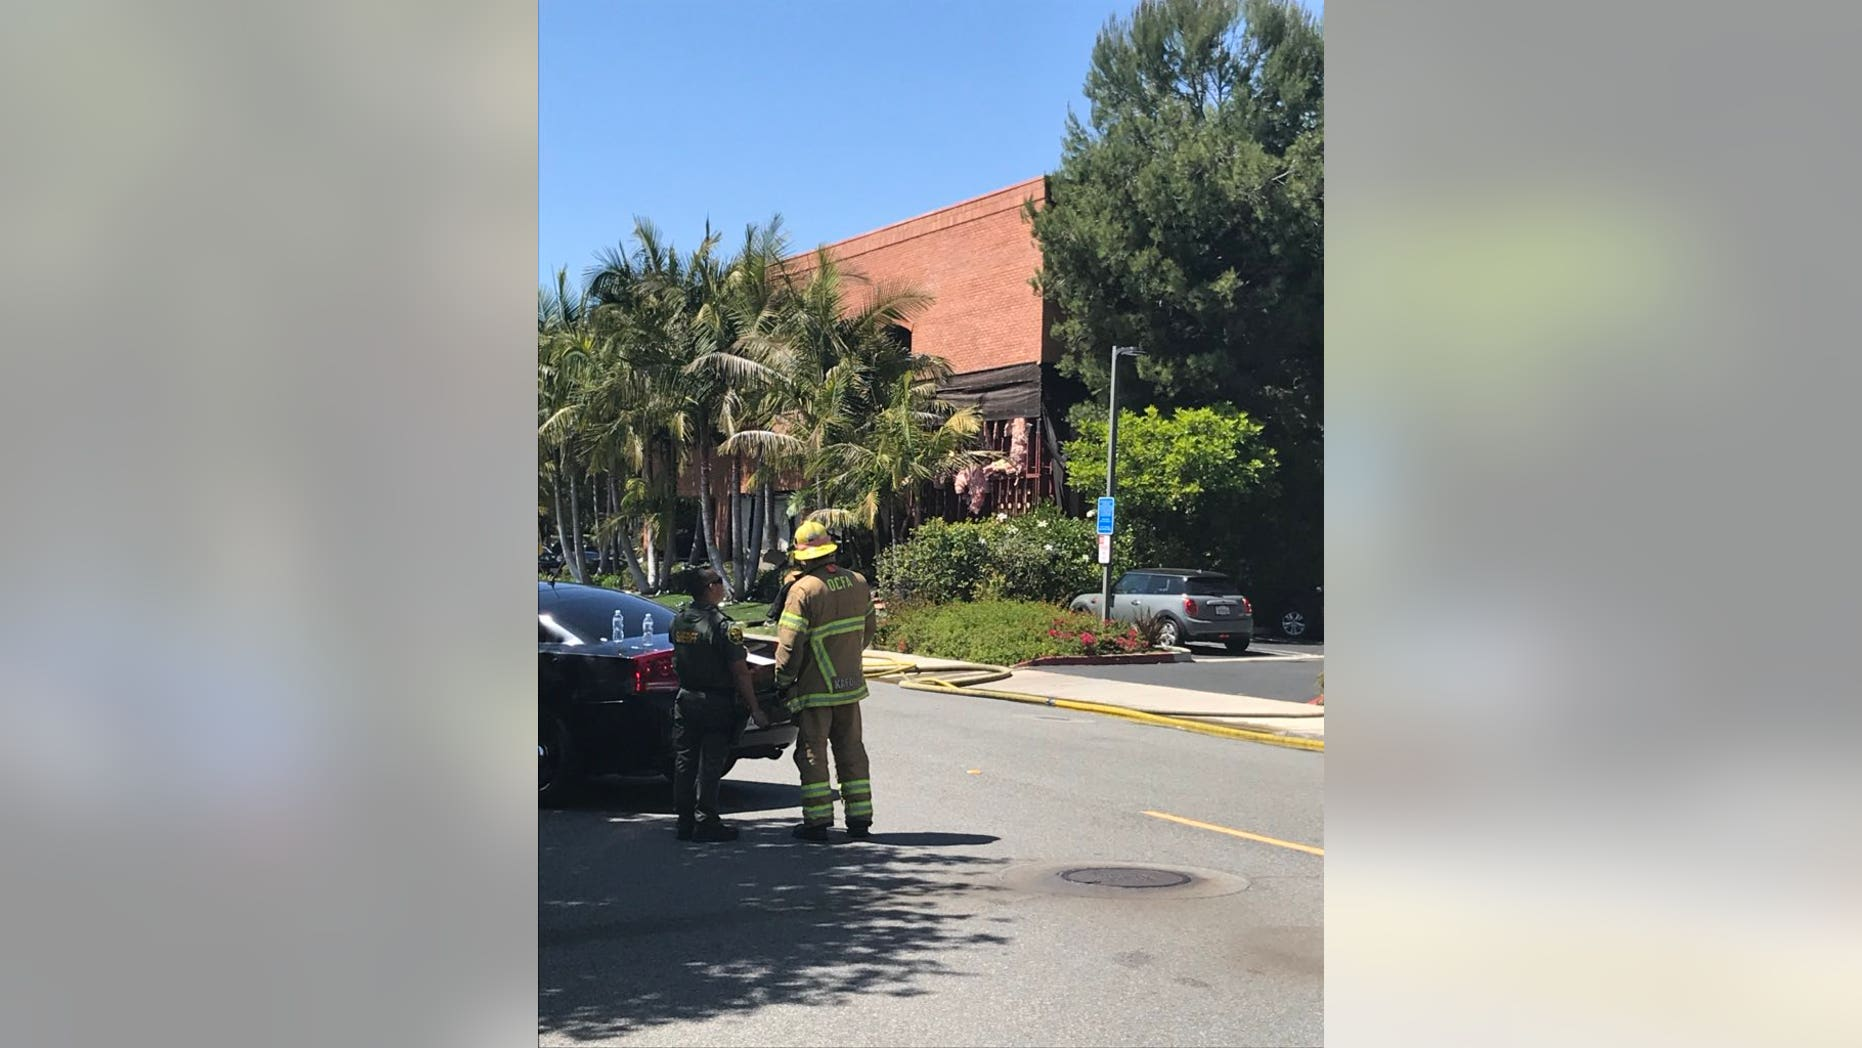 One person was killed and three others were injured during an explosion in southern California Tuesday afternoon, officials said.